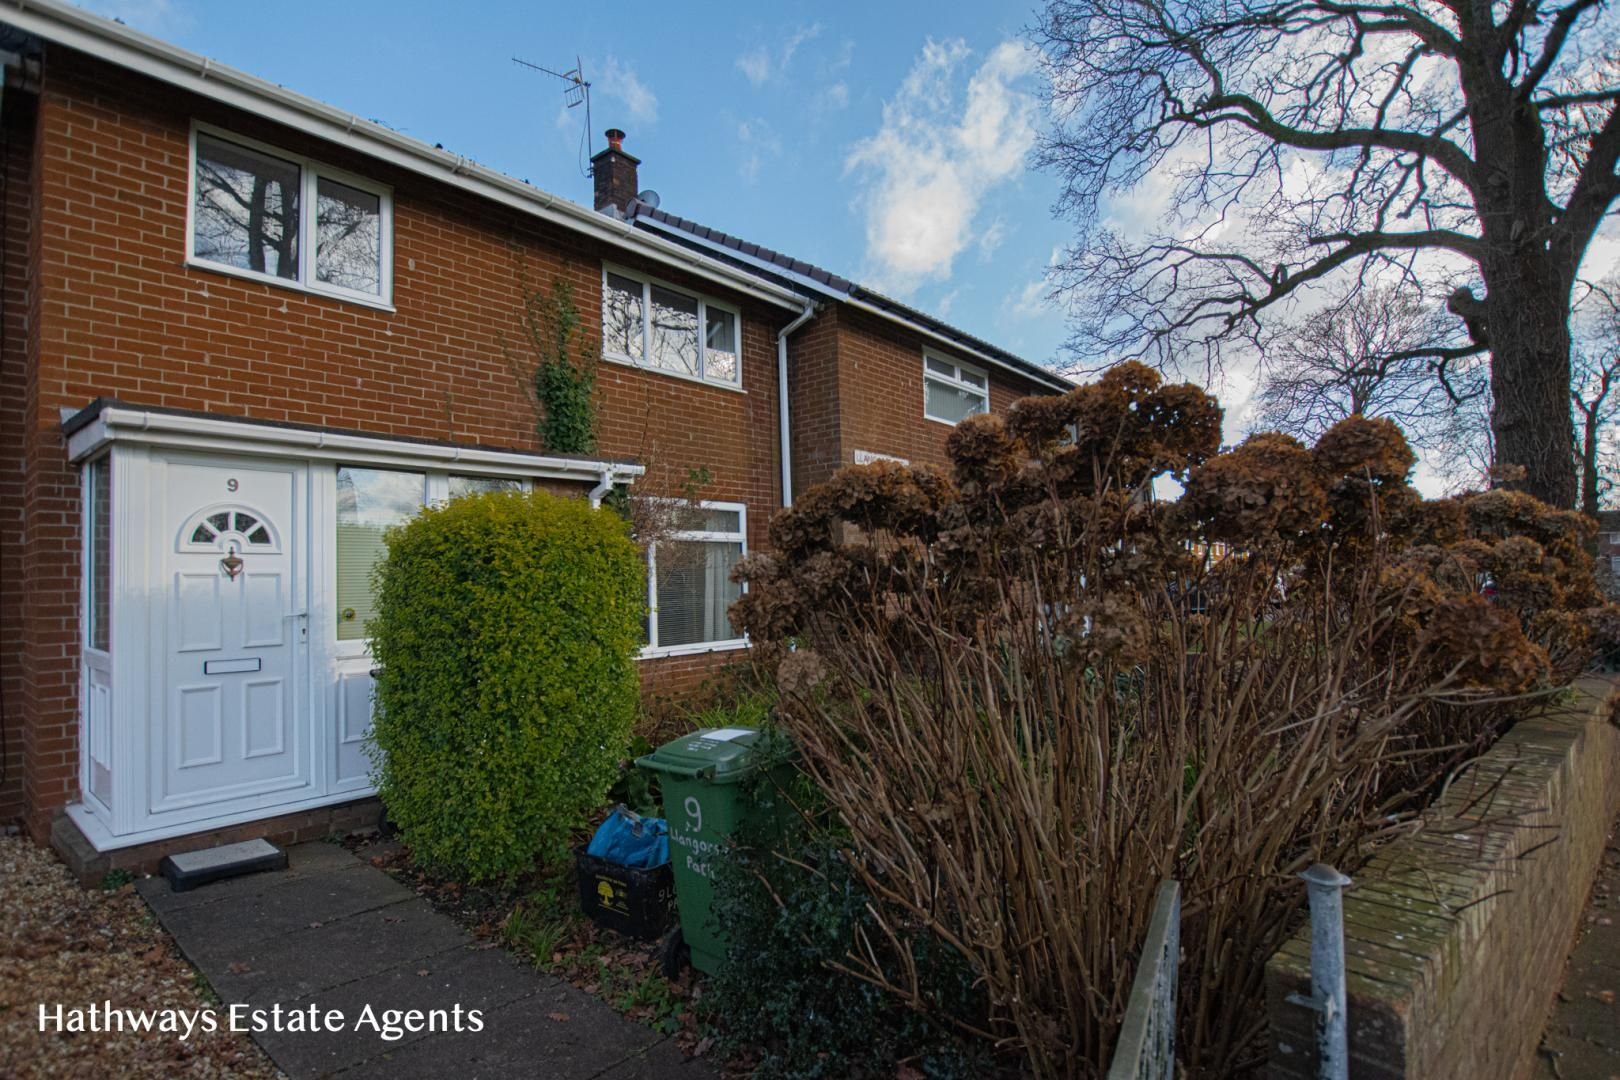 3 bed house to rent in Llangorse Path, NP44